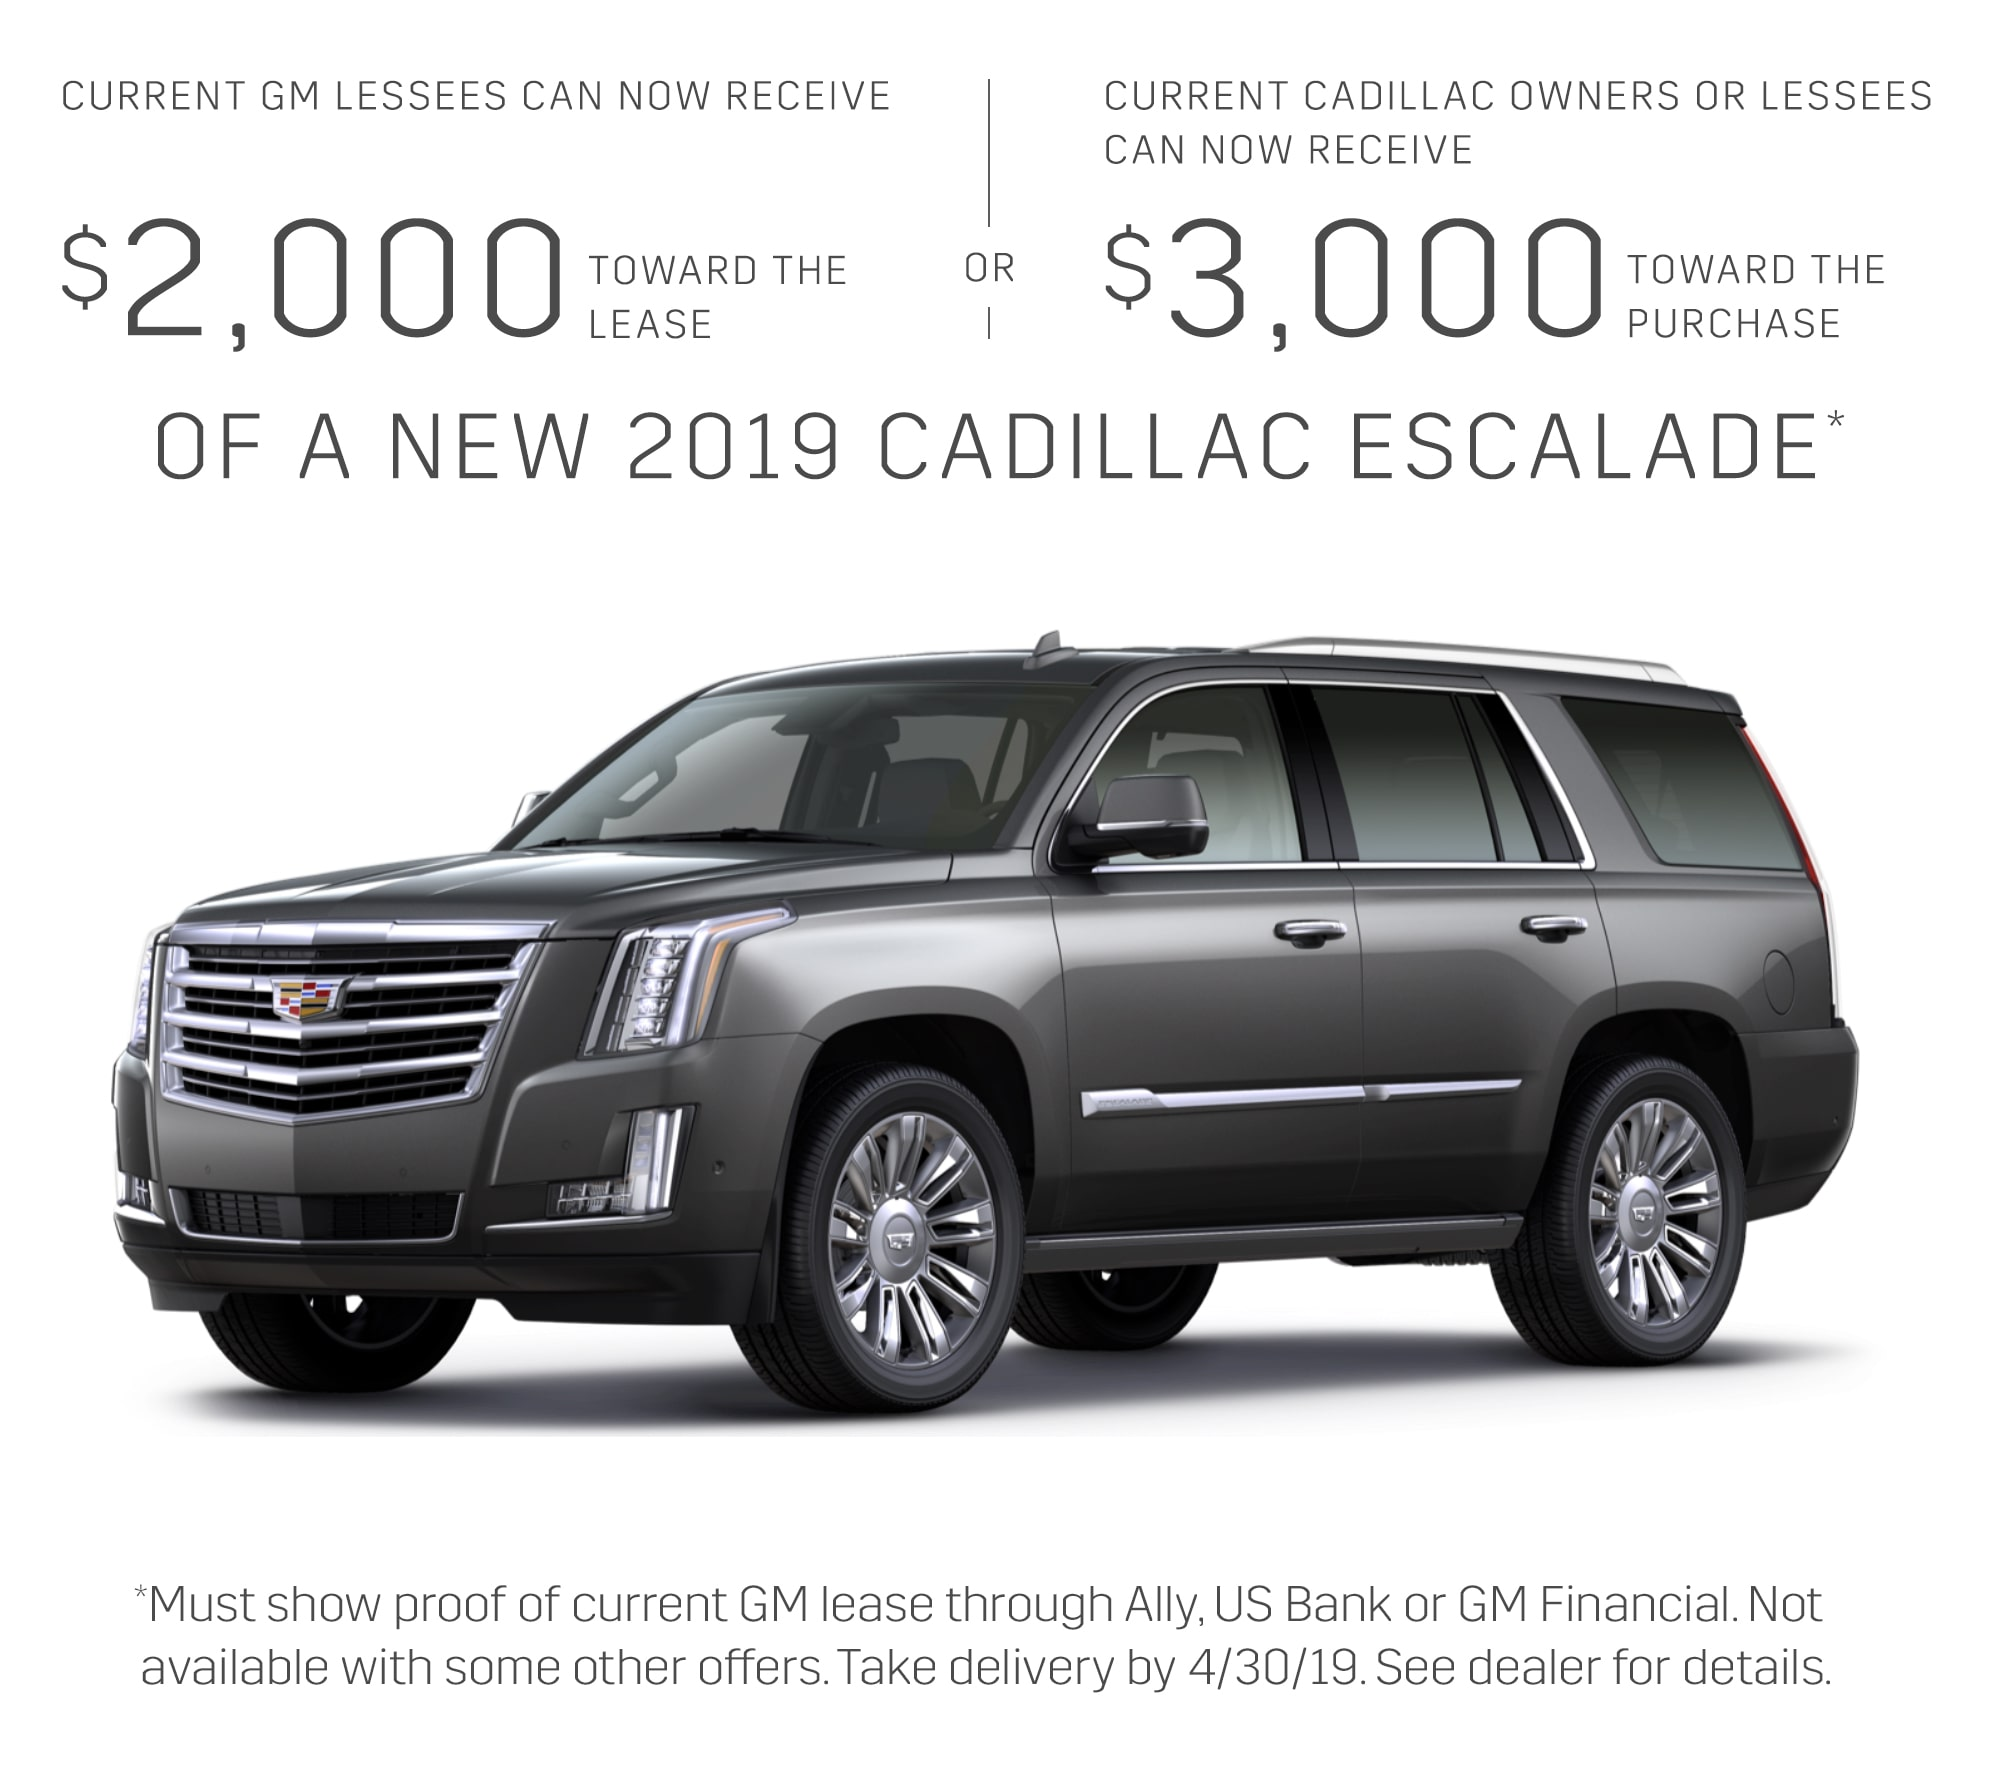 Buy Used Cadillac Escalade: Current Offers & Special Deals